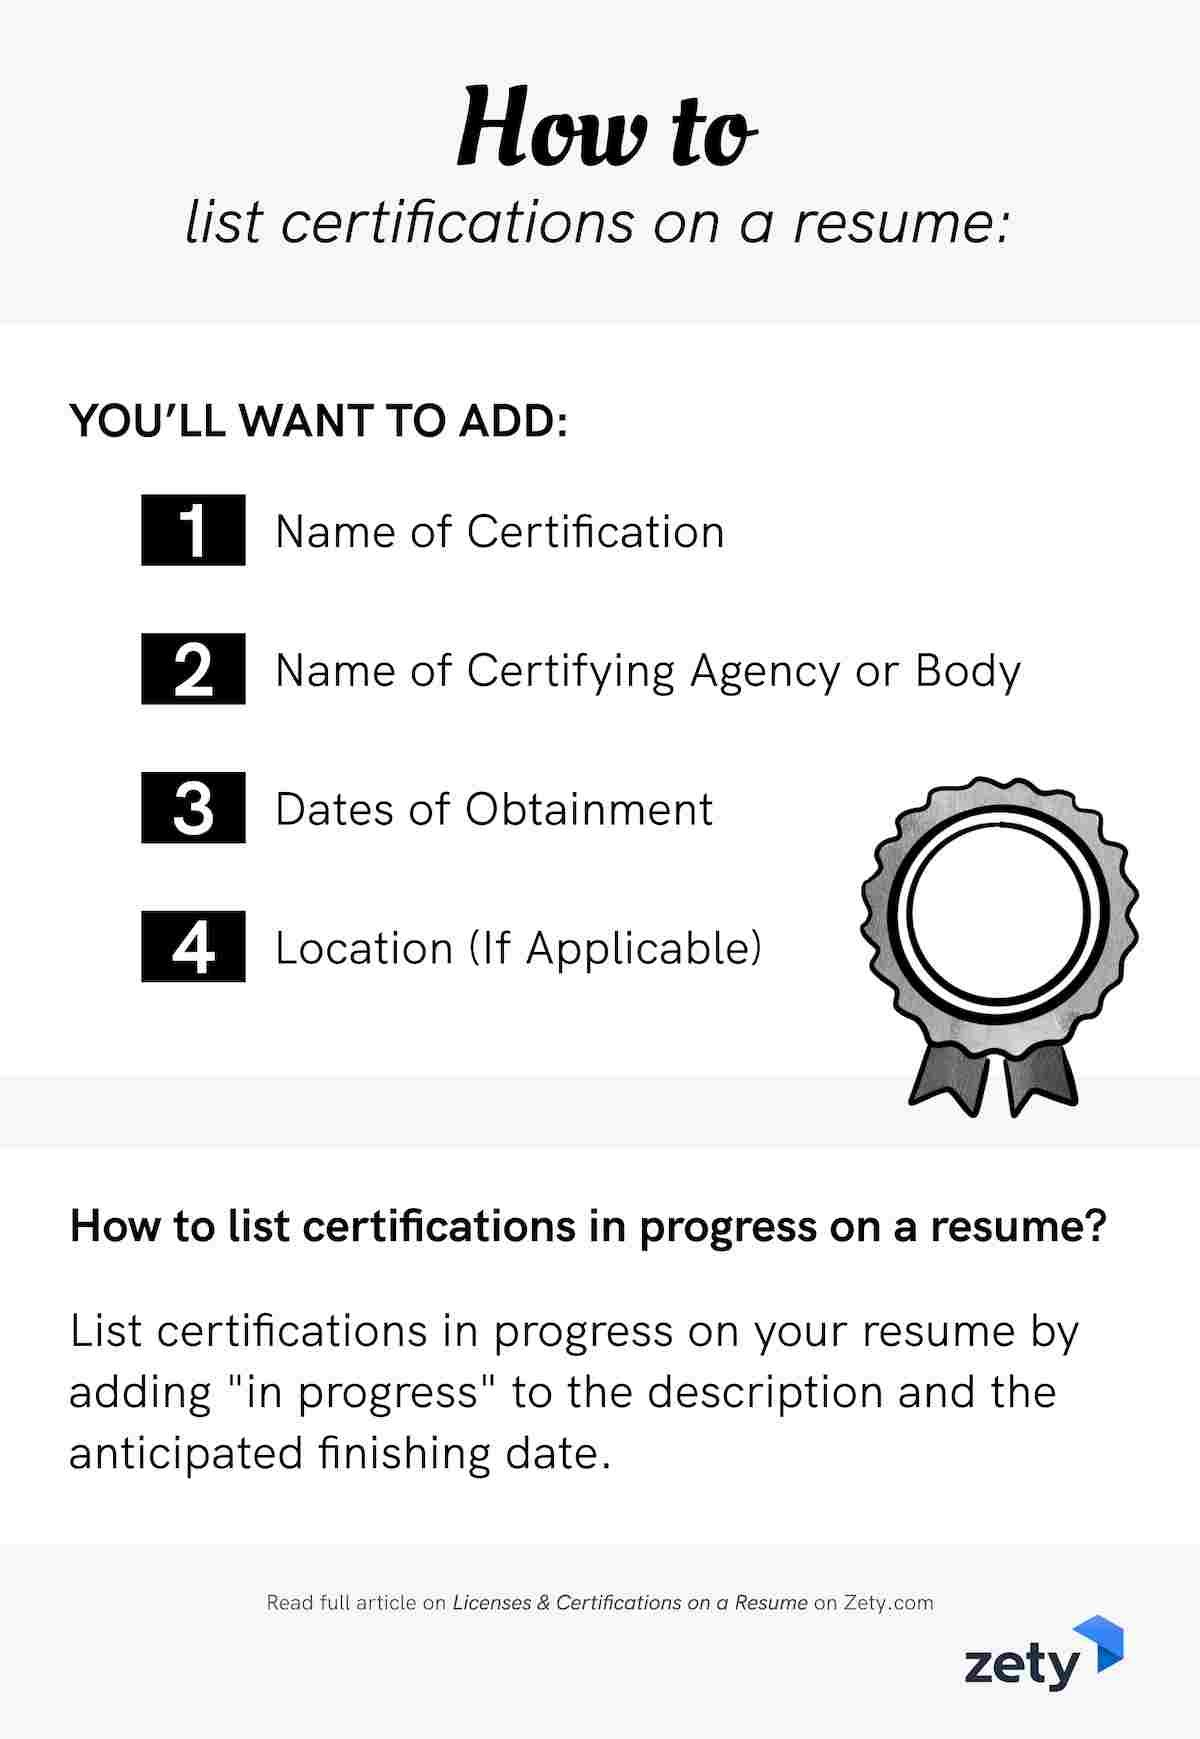 licenses certifications on resume sample easy tips listing to health care aide language Resume Listing Certifications On Resume